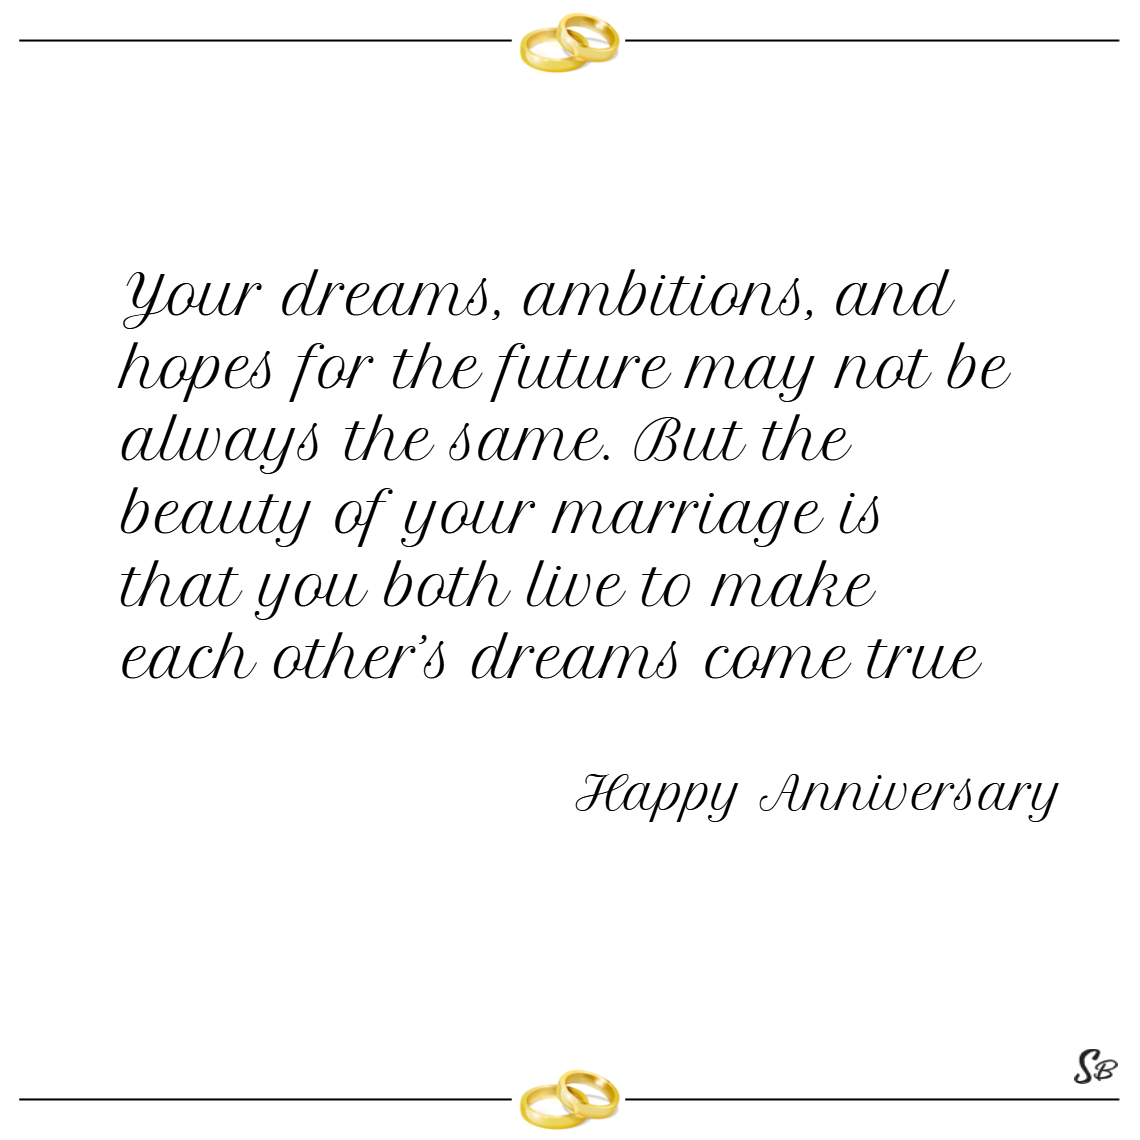 Your dreams, ambitions, and hopes for the future may not be always the same. but the beauty of your marriage is that you both live to make each other's dreams come true